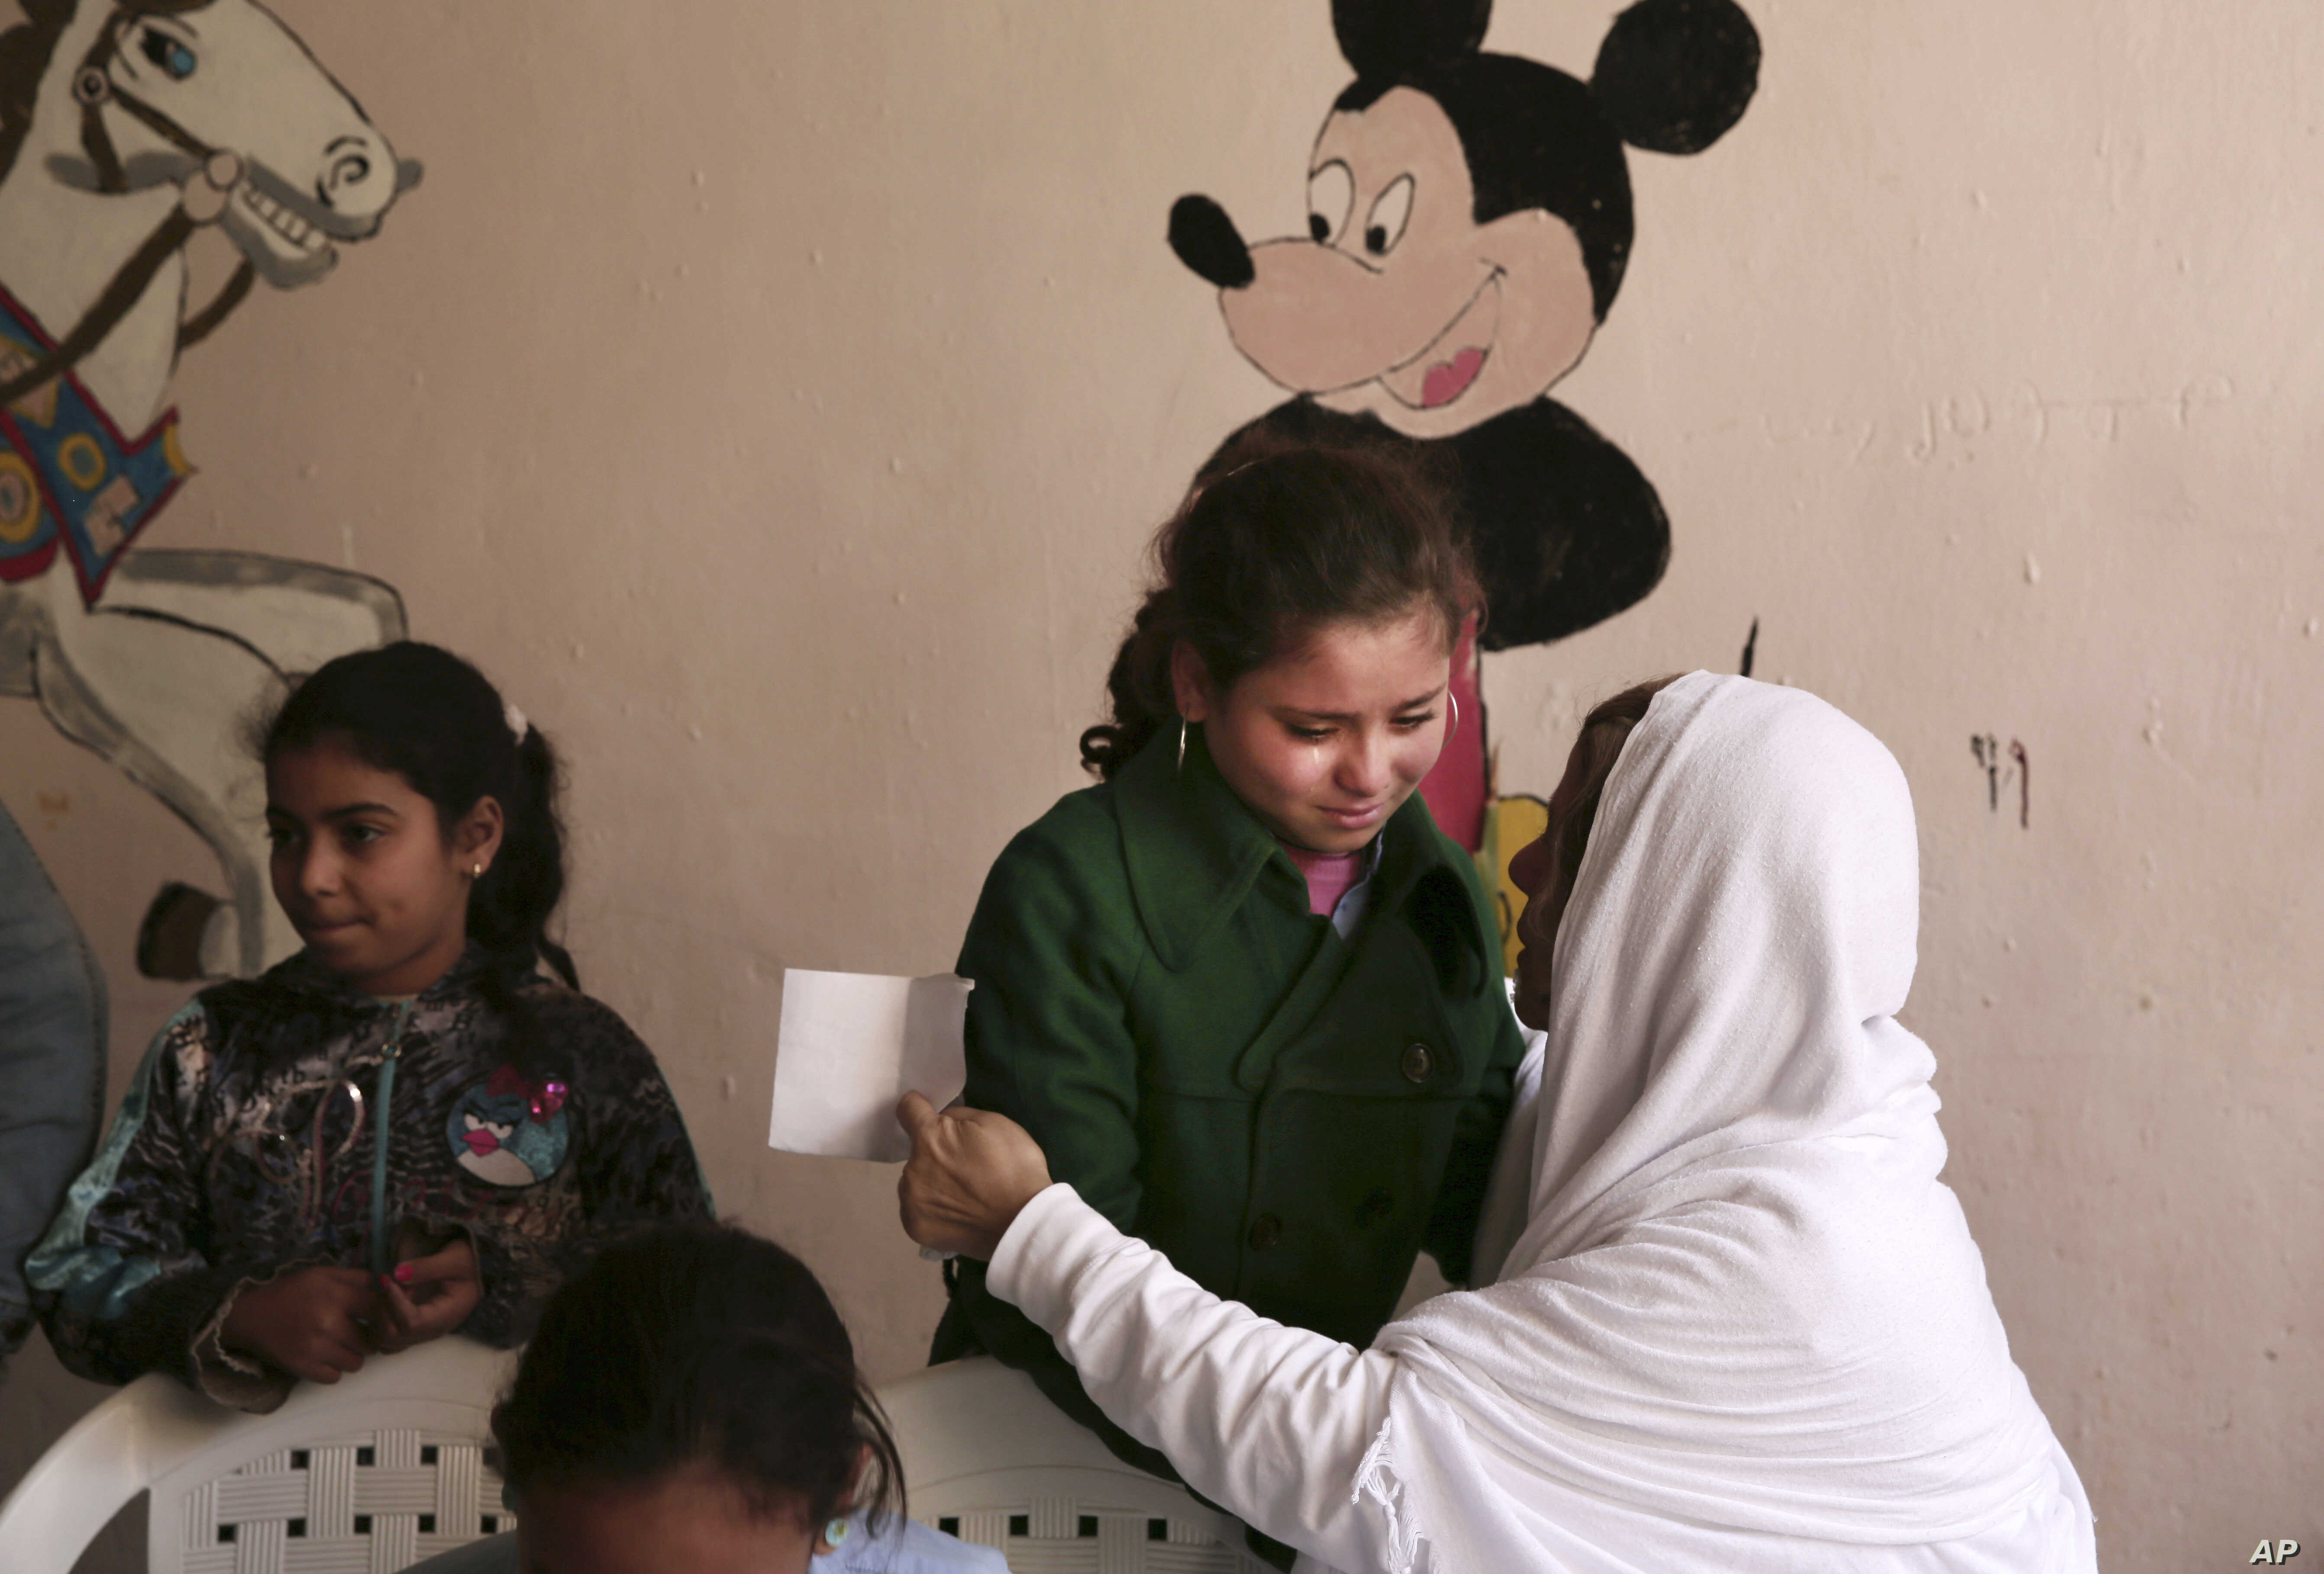 FILE - A woman comforts a child at a community development center in the Manshiet Nasr neighborhood of Cairo, Egypt, Feb. 25, 2015, as a Disney character is seen in the background.